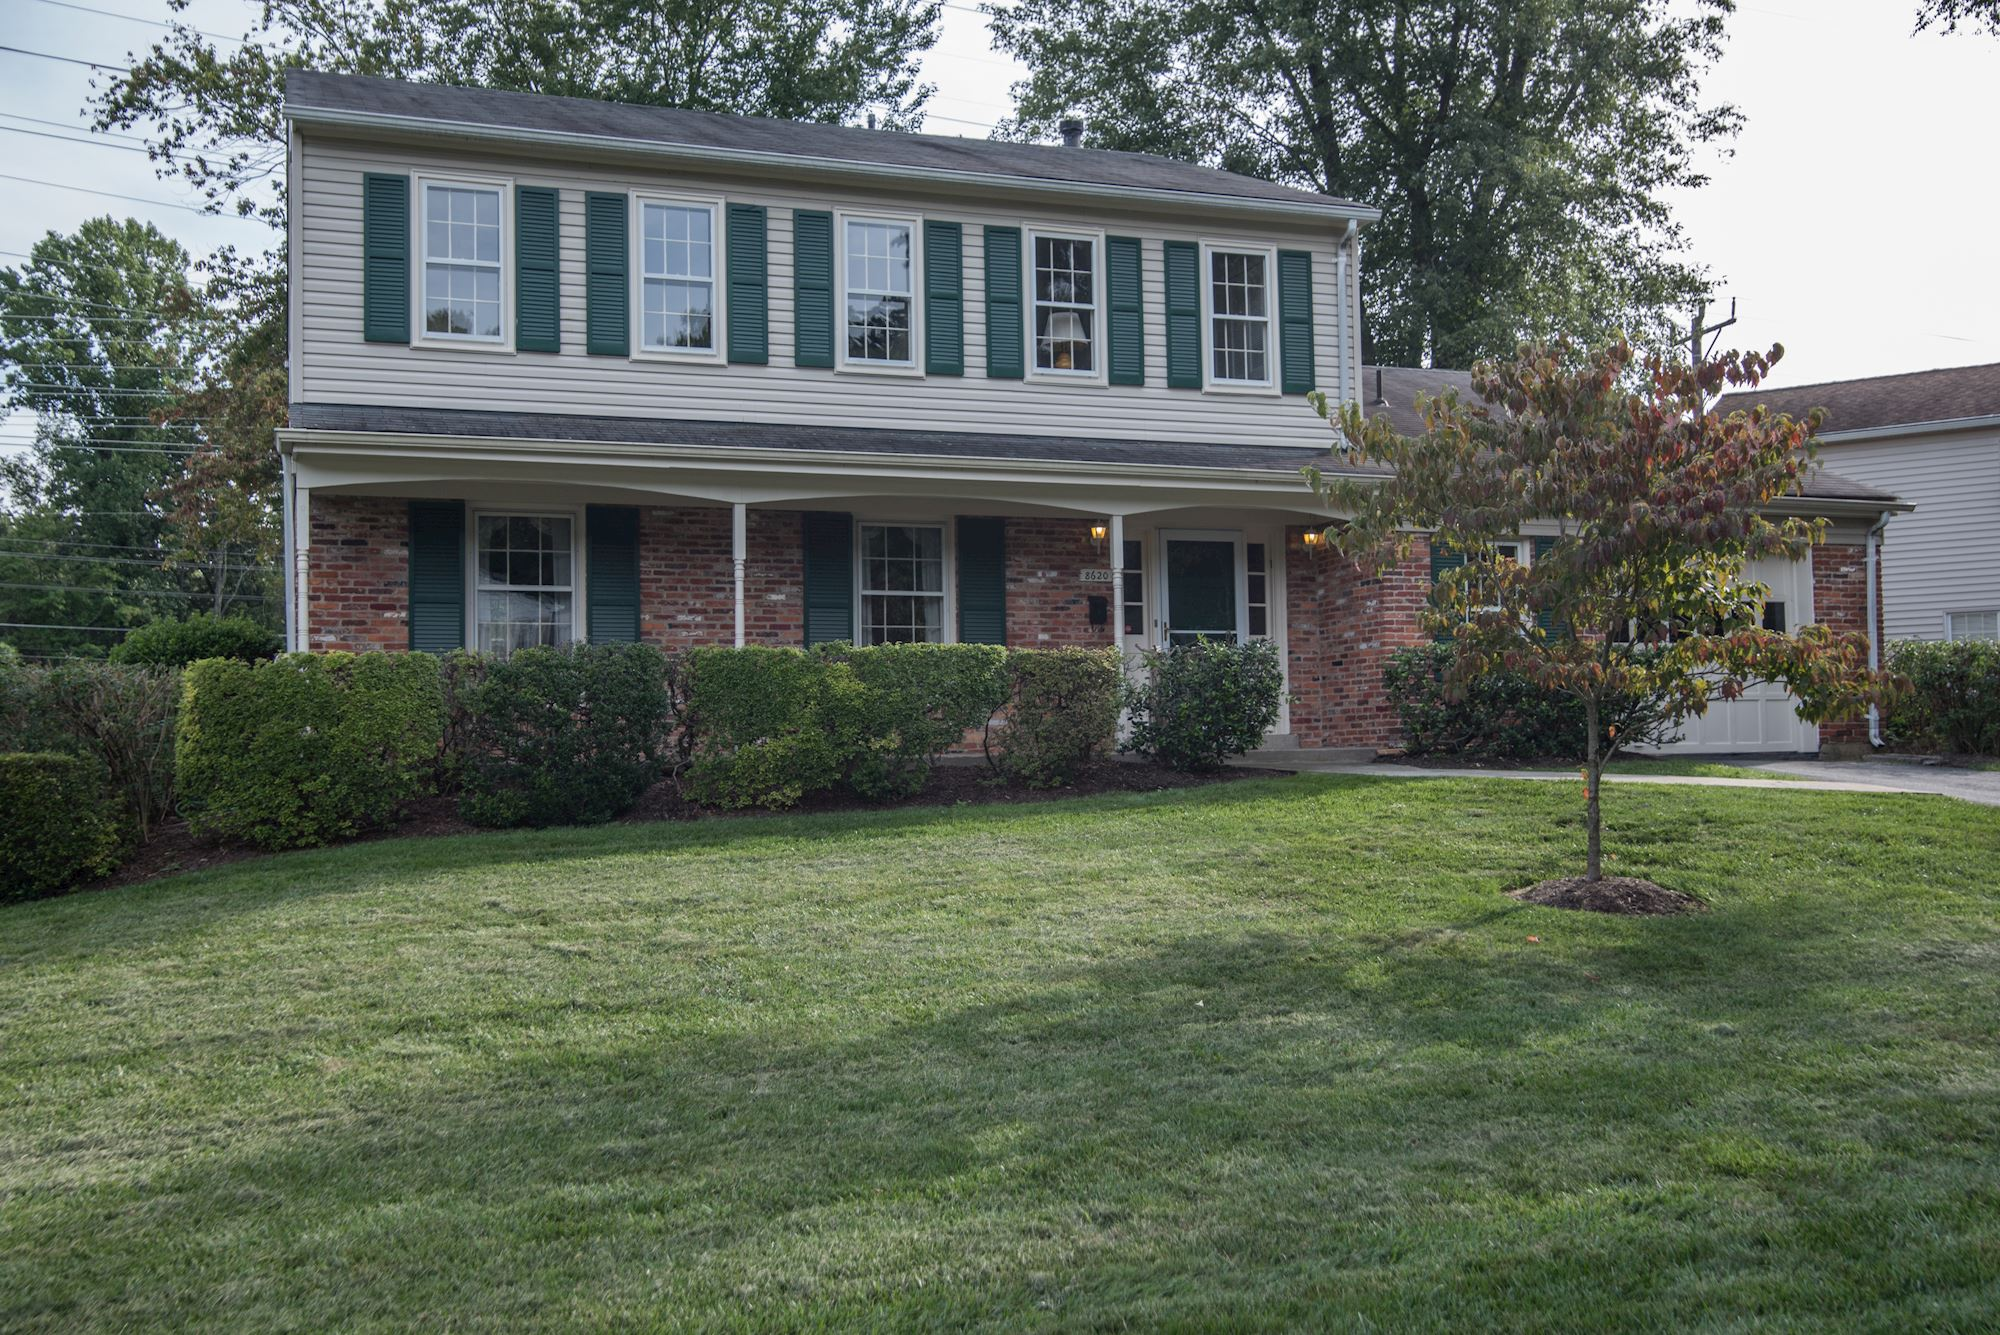 SOLD 8620 WILD OLIVE DRIVE POTOMAC MD The Meg and Alison Team